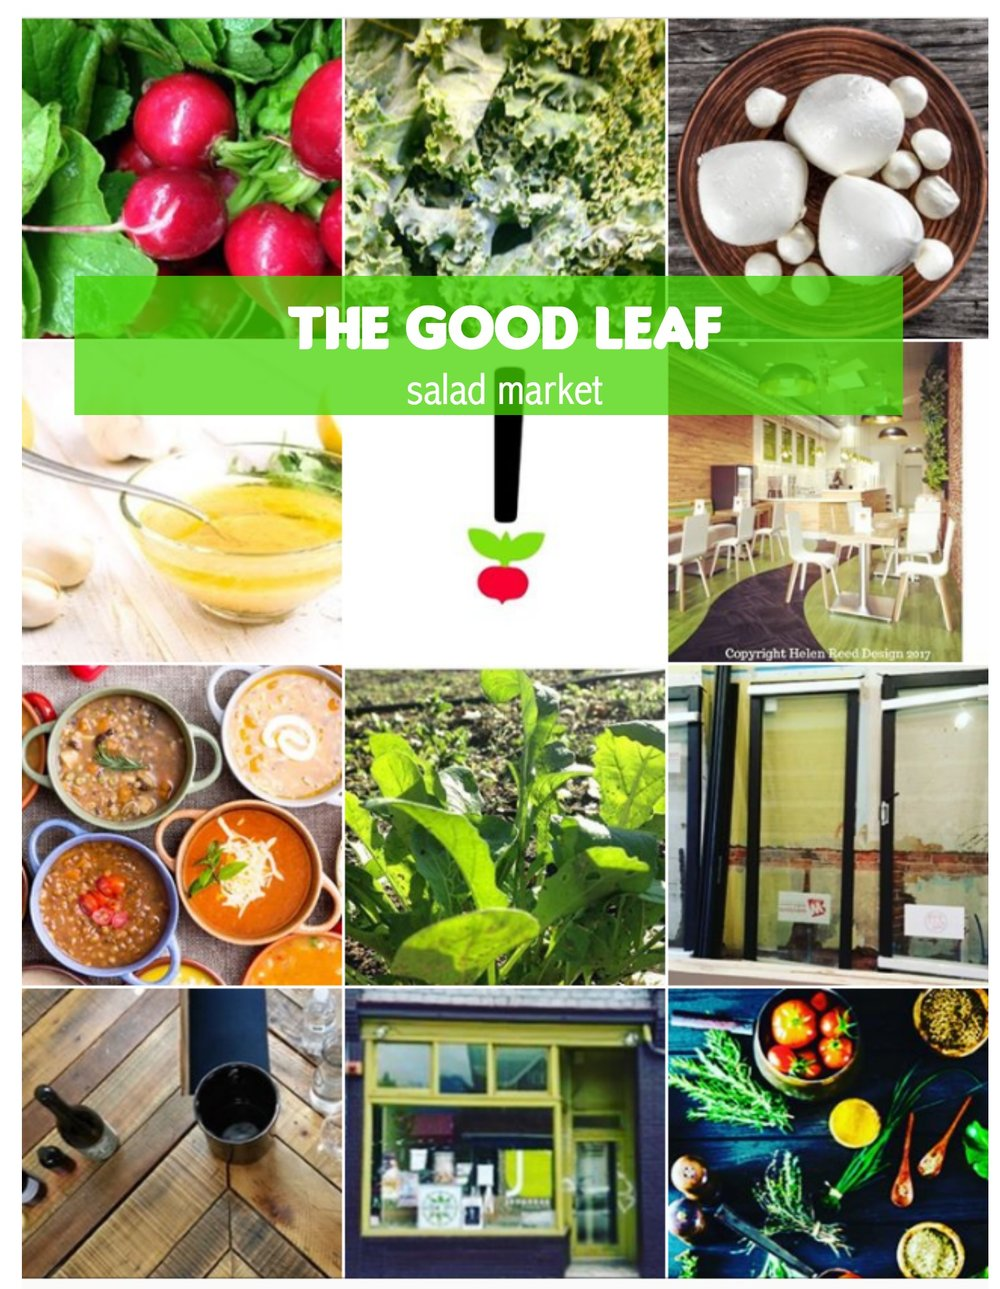 The Good Leaf instagram.jpg